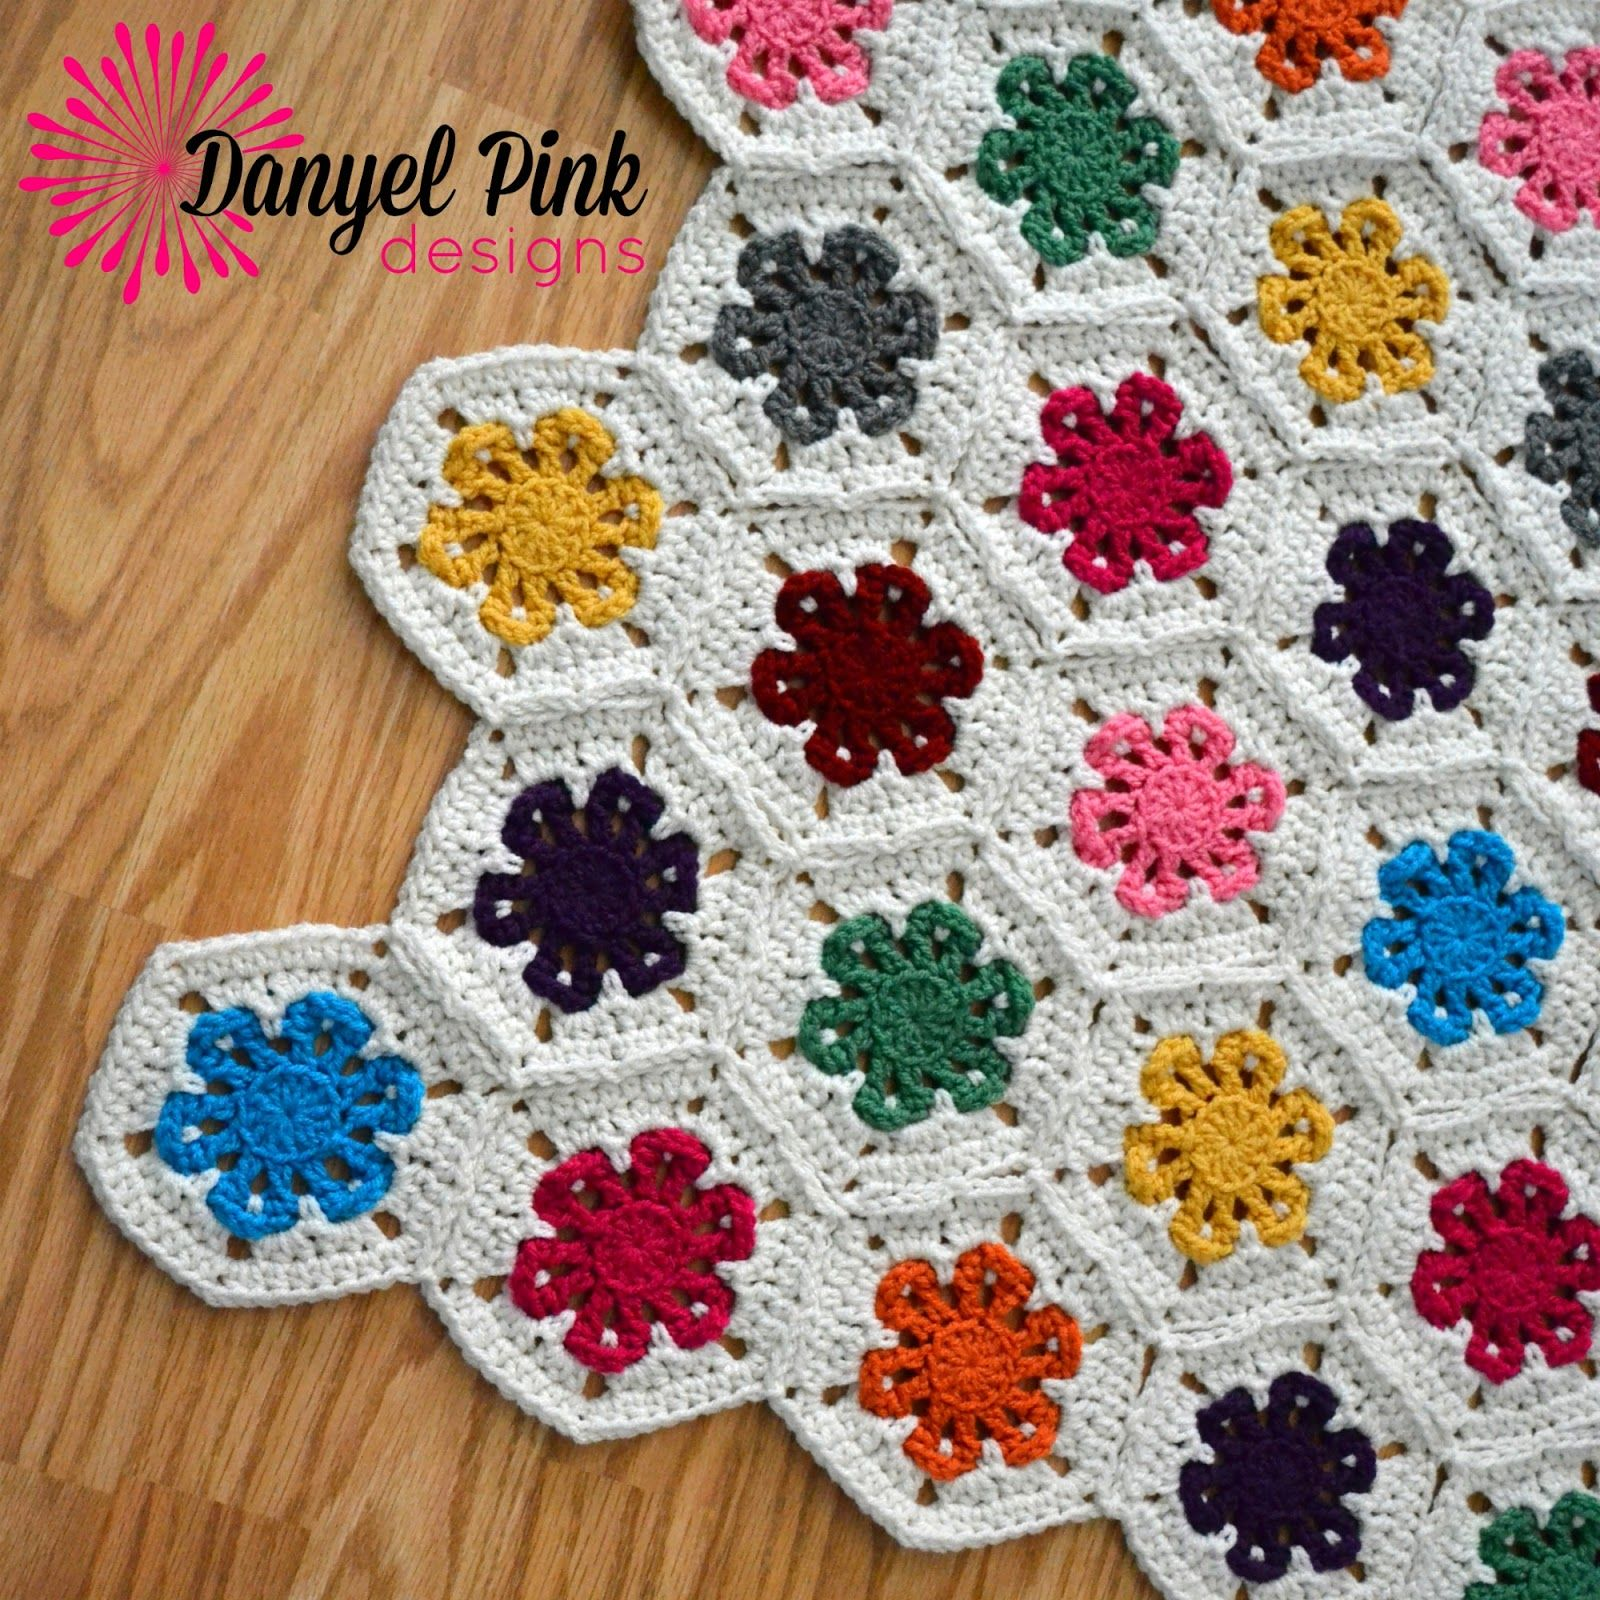 Danyel pink designs lazy daisy garden afghan crochet pattern for danyel pink designs lazy daisy garden afghan crochet pattern for sale on ravelry bankloansurffo Image collections